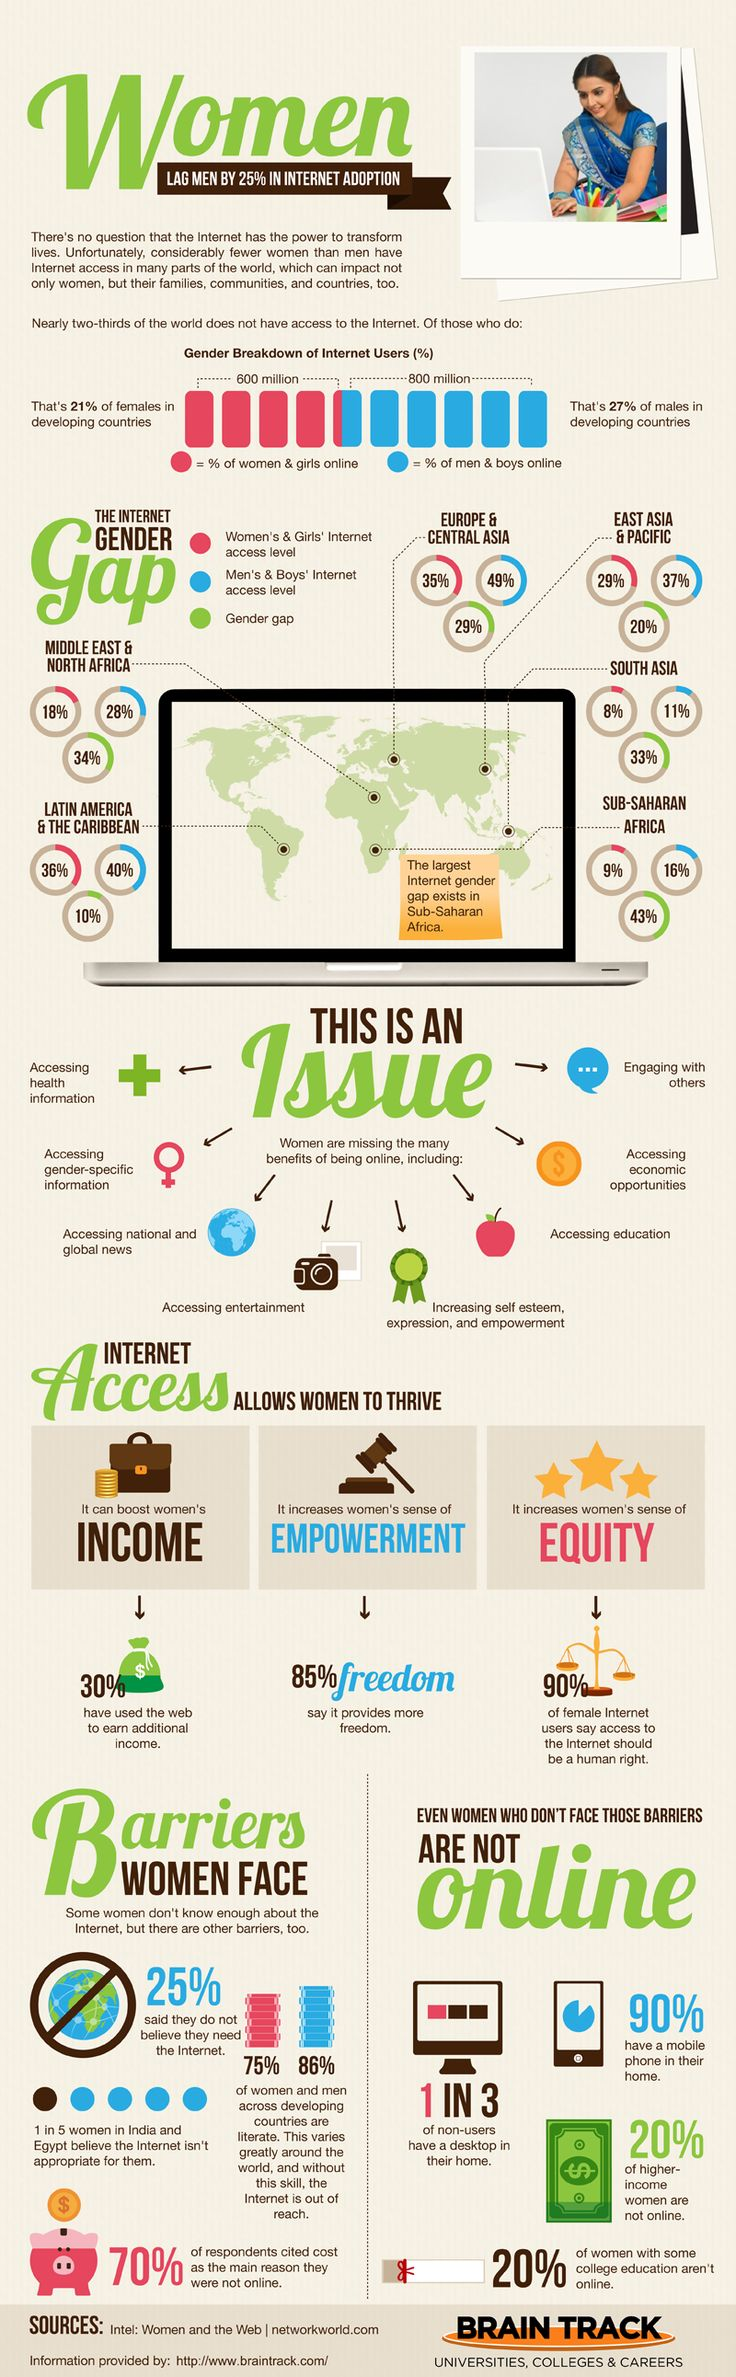 This infographic by Brain Trackbreaks down internet adoption rates in different parts of the world and explores the reasons why women are not getting online as quickly as men.